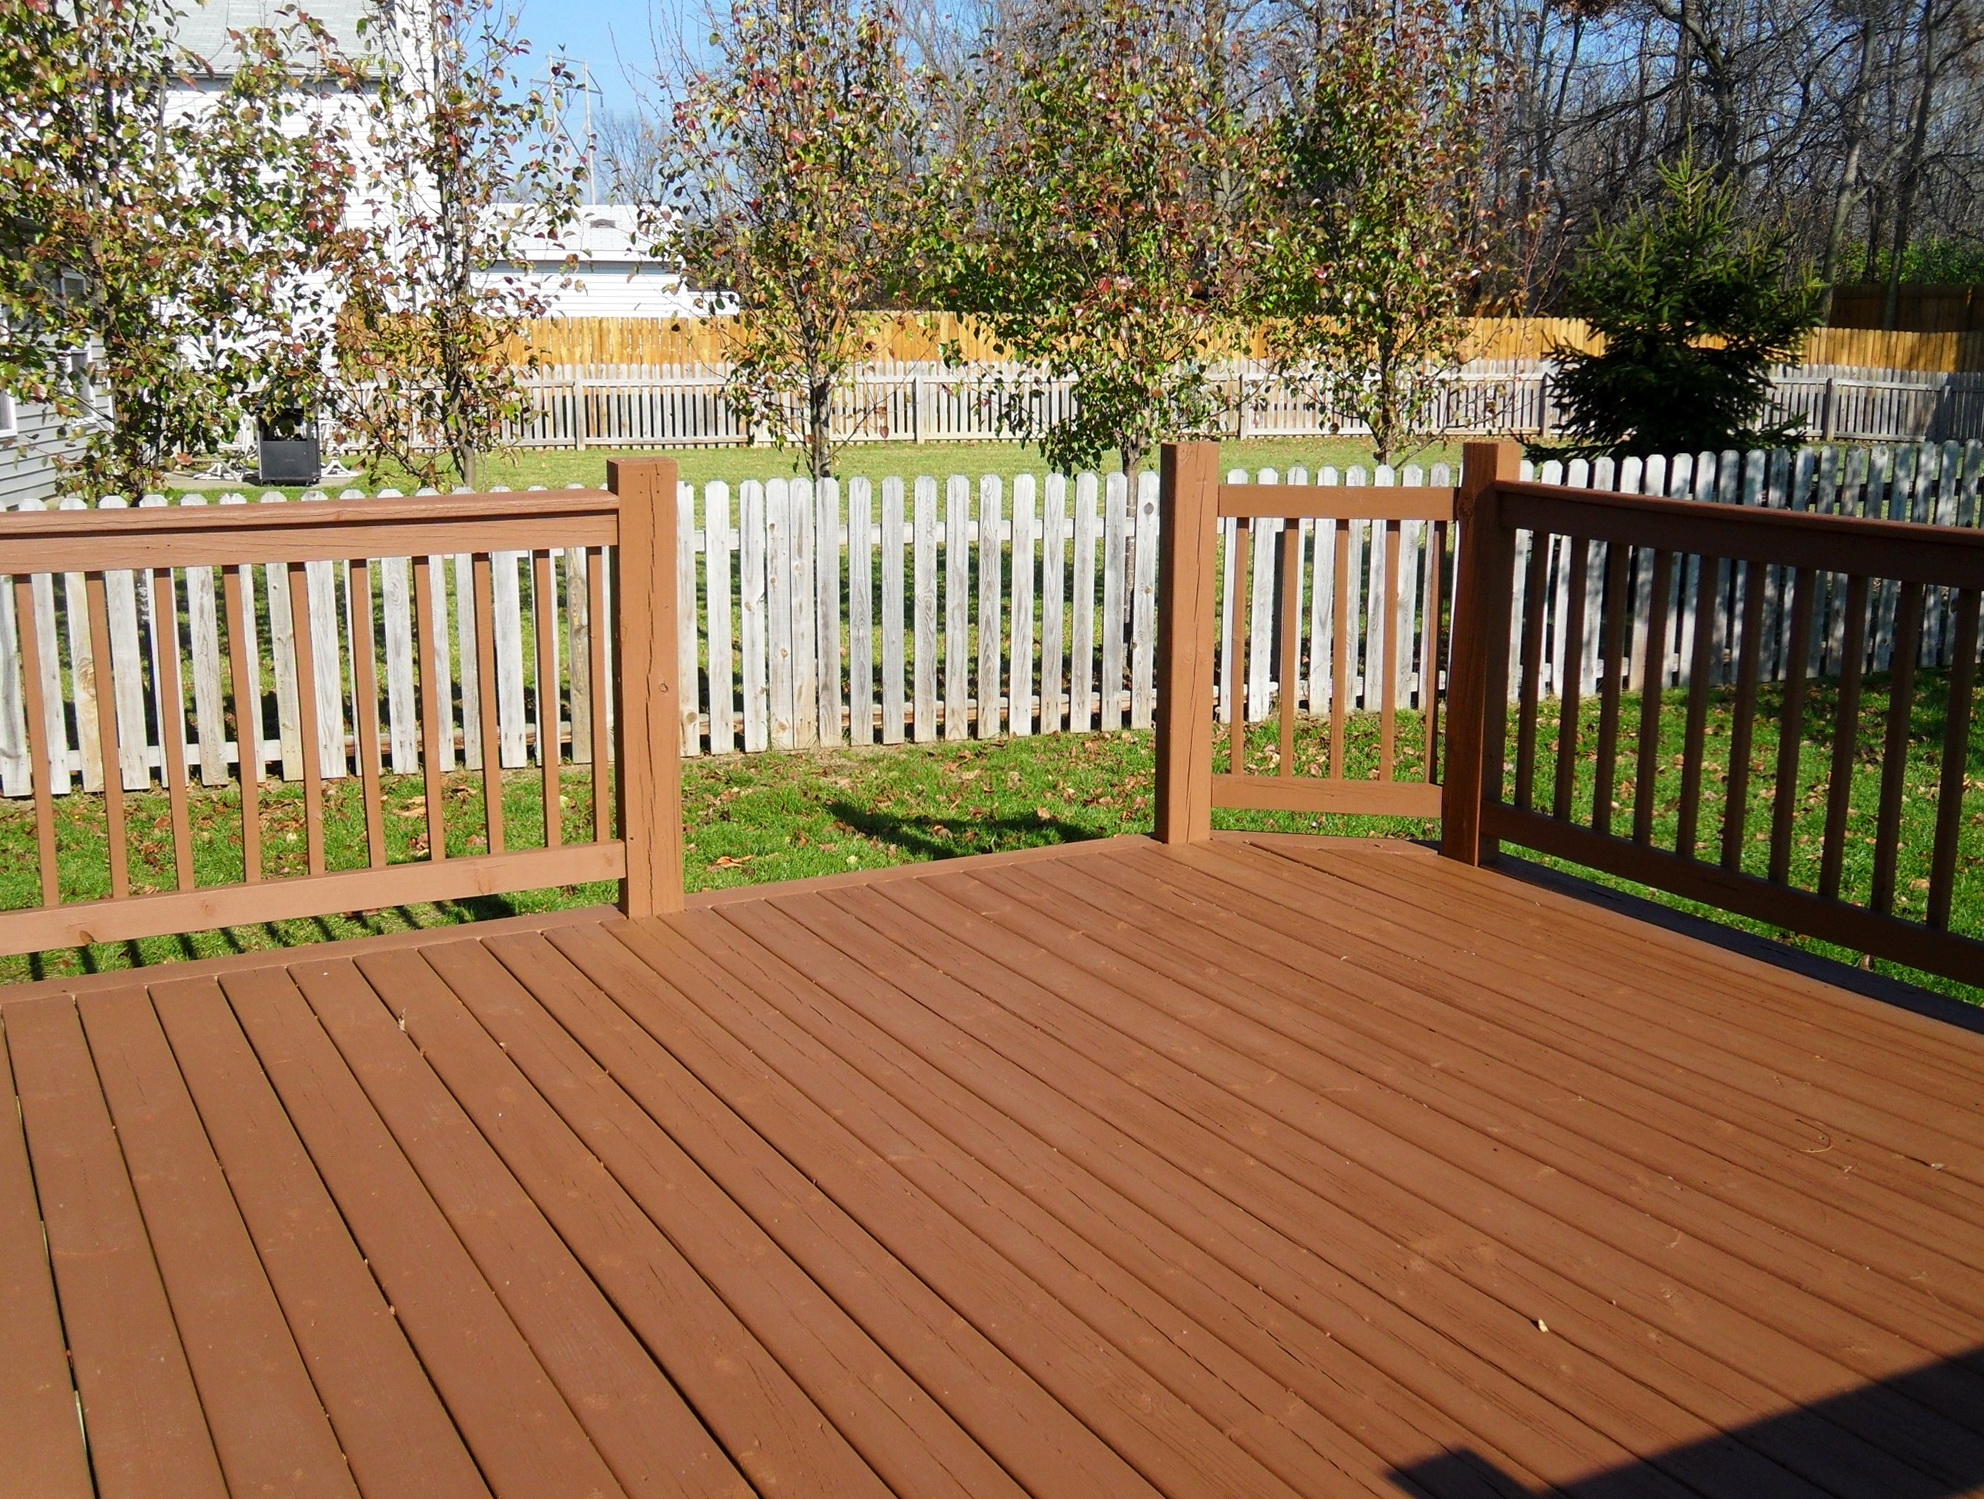 Outdoor deck stain colors outdoor designs deck stain colors ideas home design geenschuldenfo Image collections